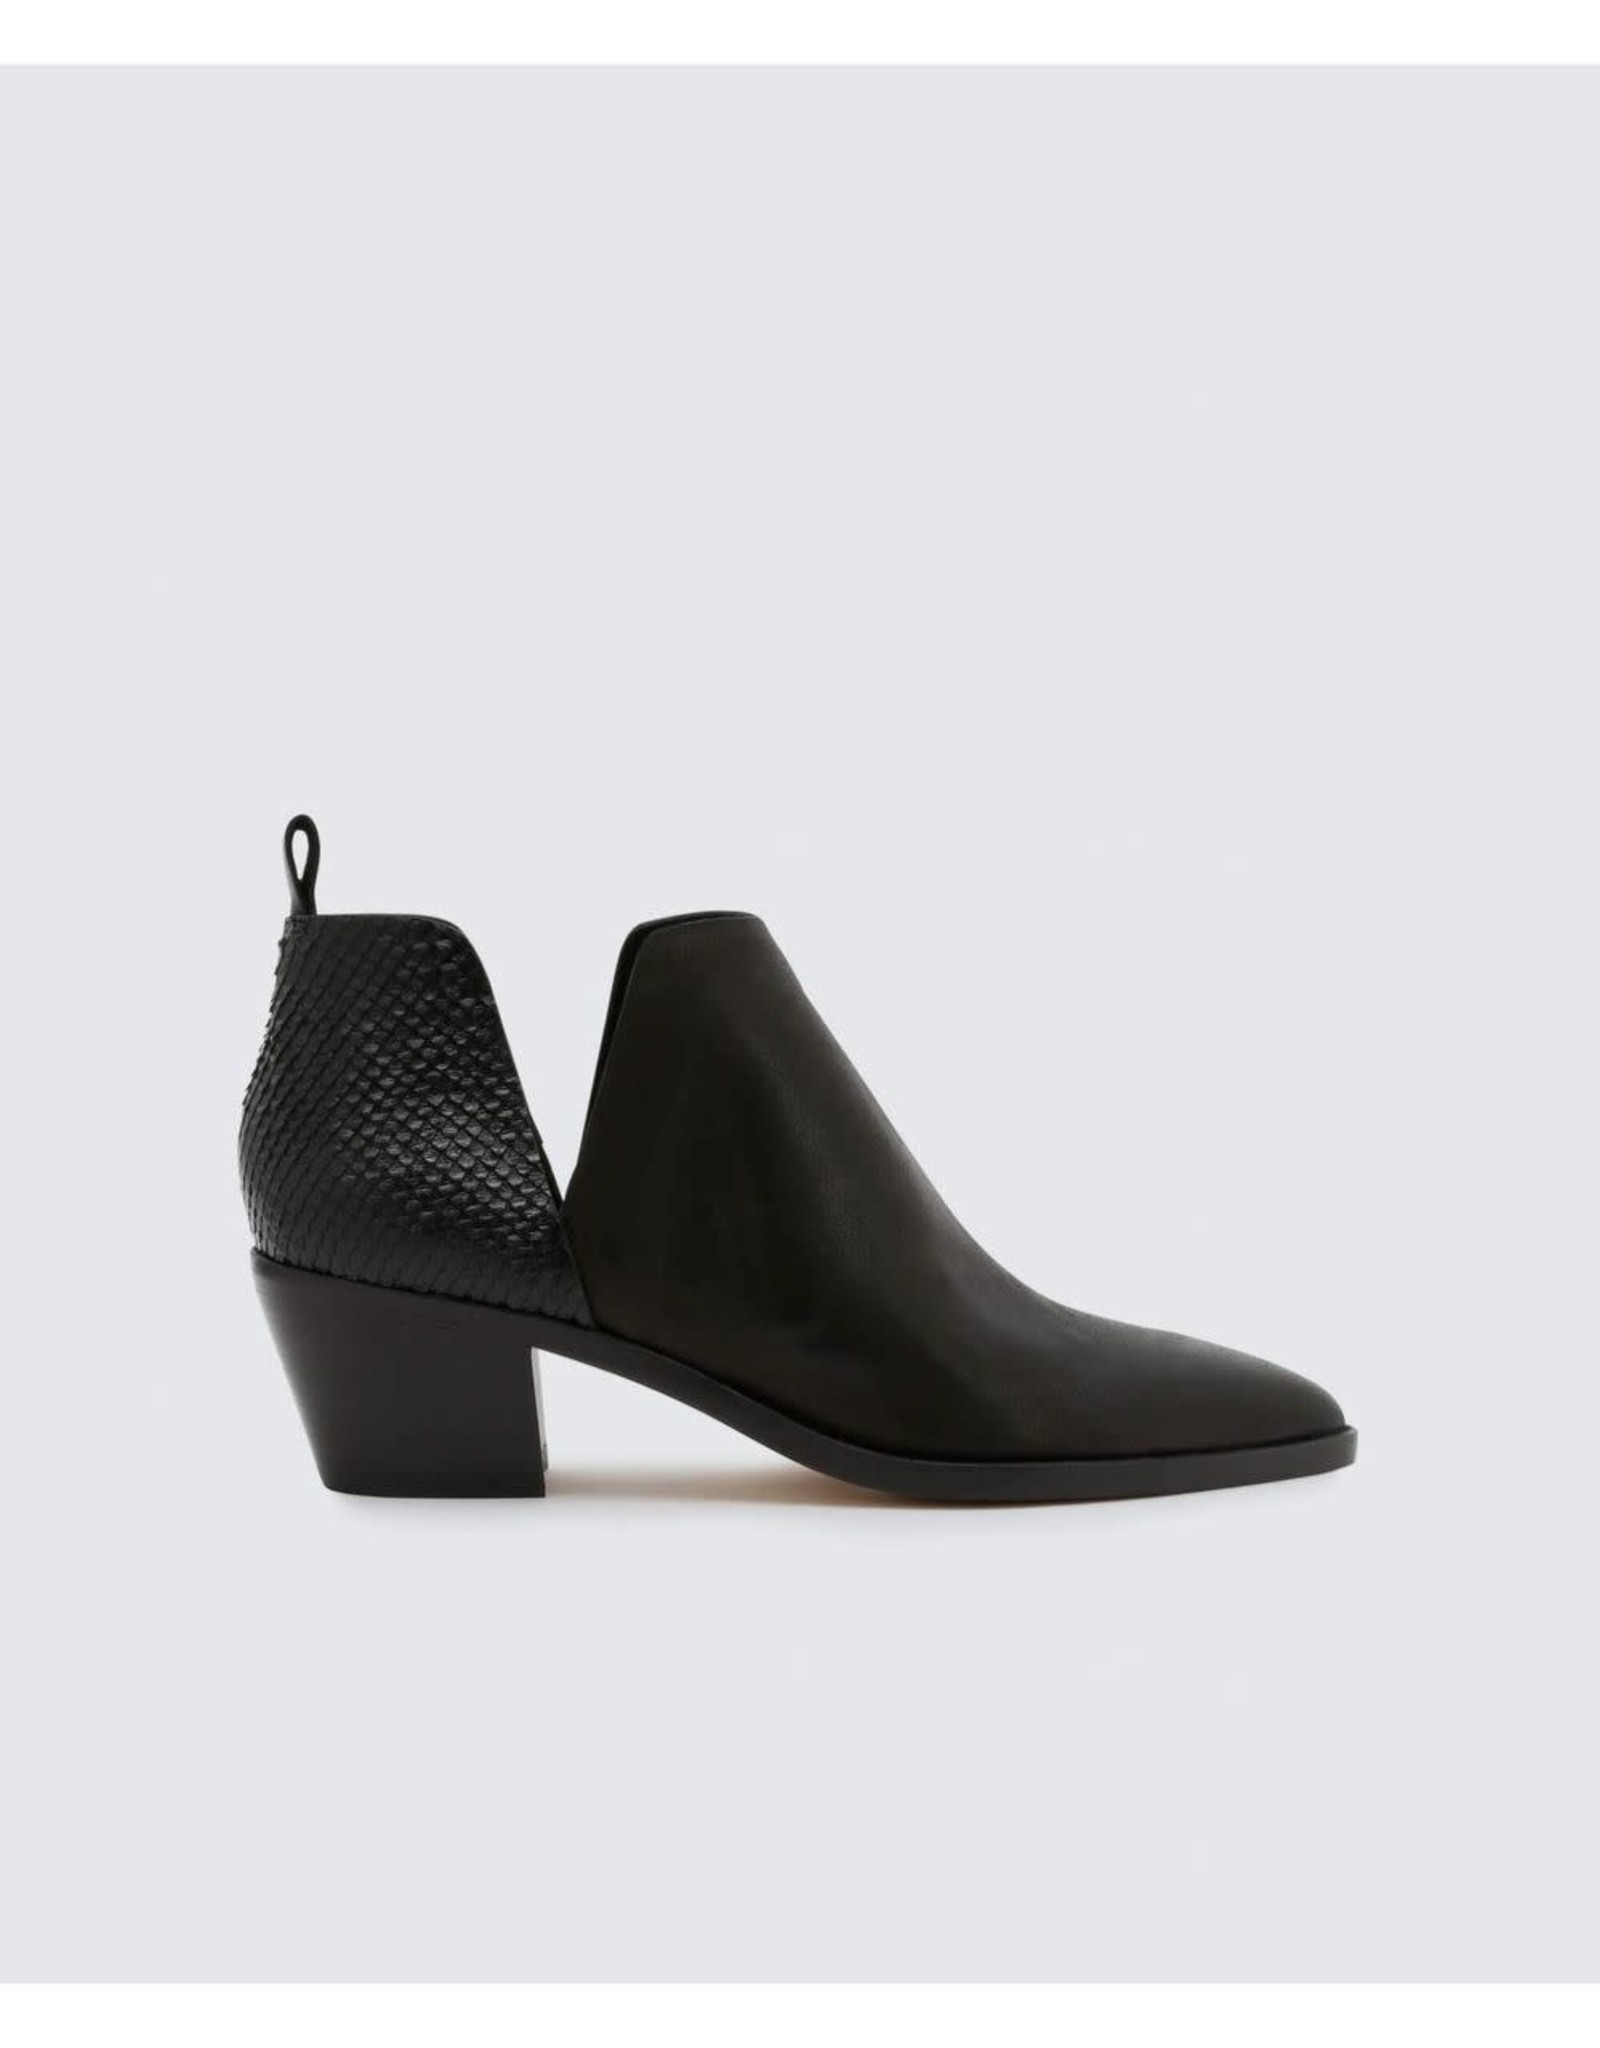 Dolce Vita Sonni Booties in Black